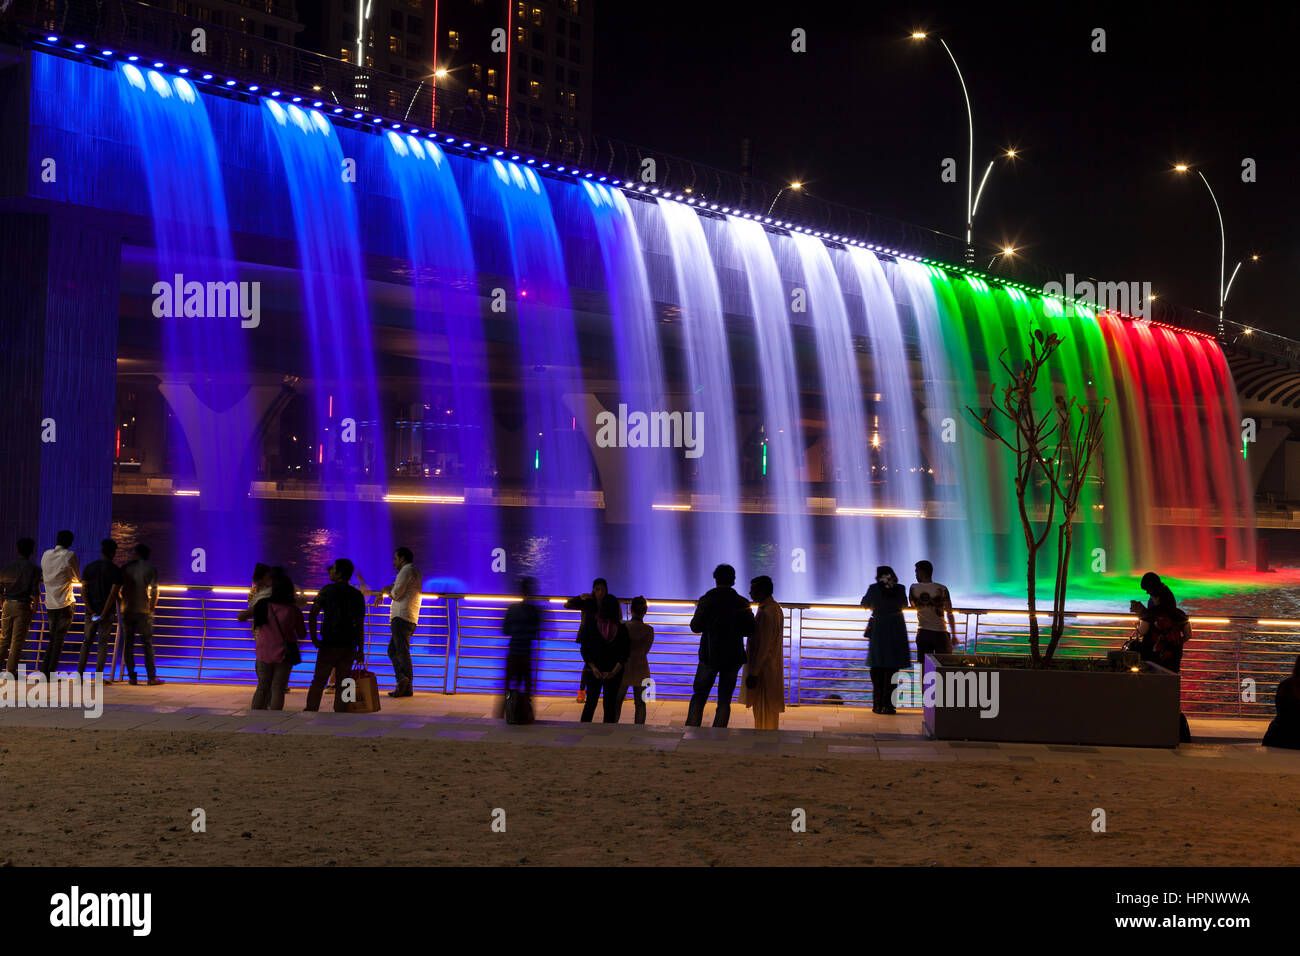 DUBAI, UAE - NOV 28, 2016: Colorful illuminated Waterfall in Dubai. The Waterfall is part of the Dubai Water Canal - Stock Image